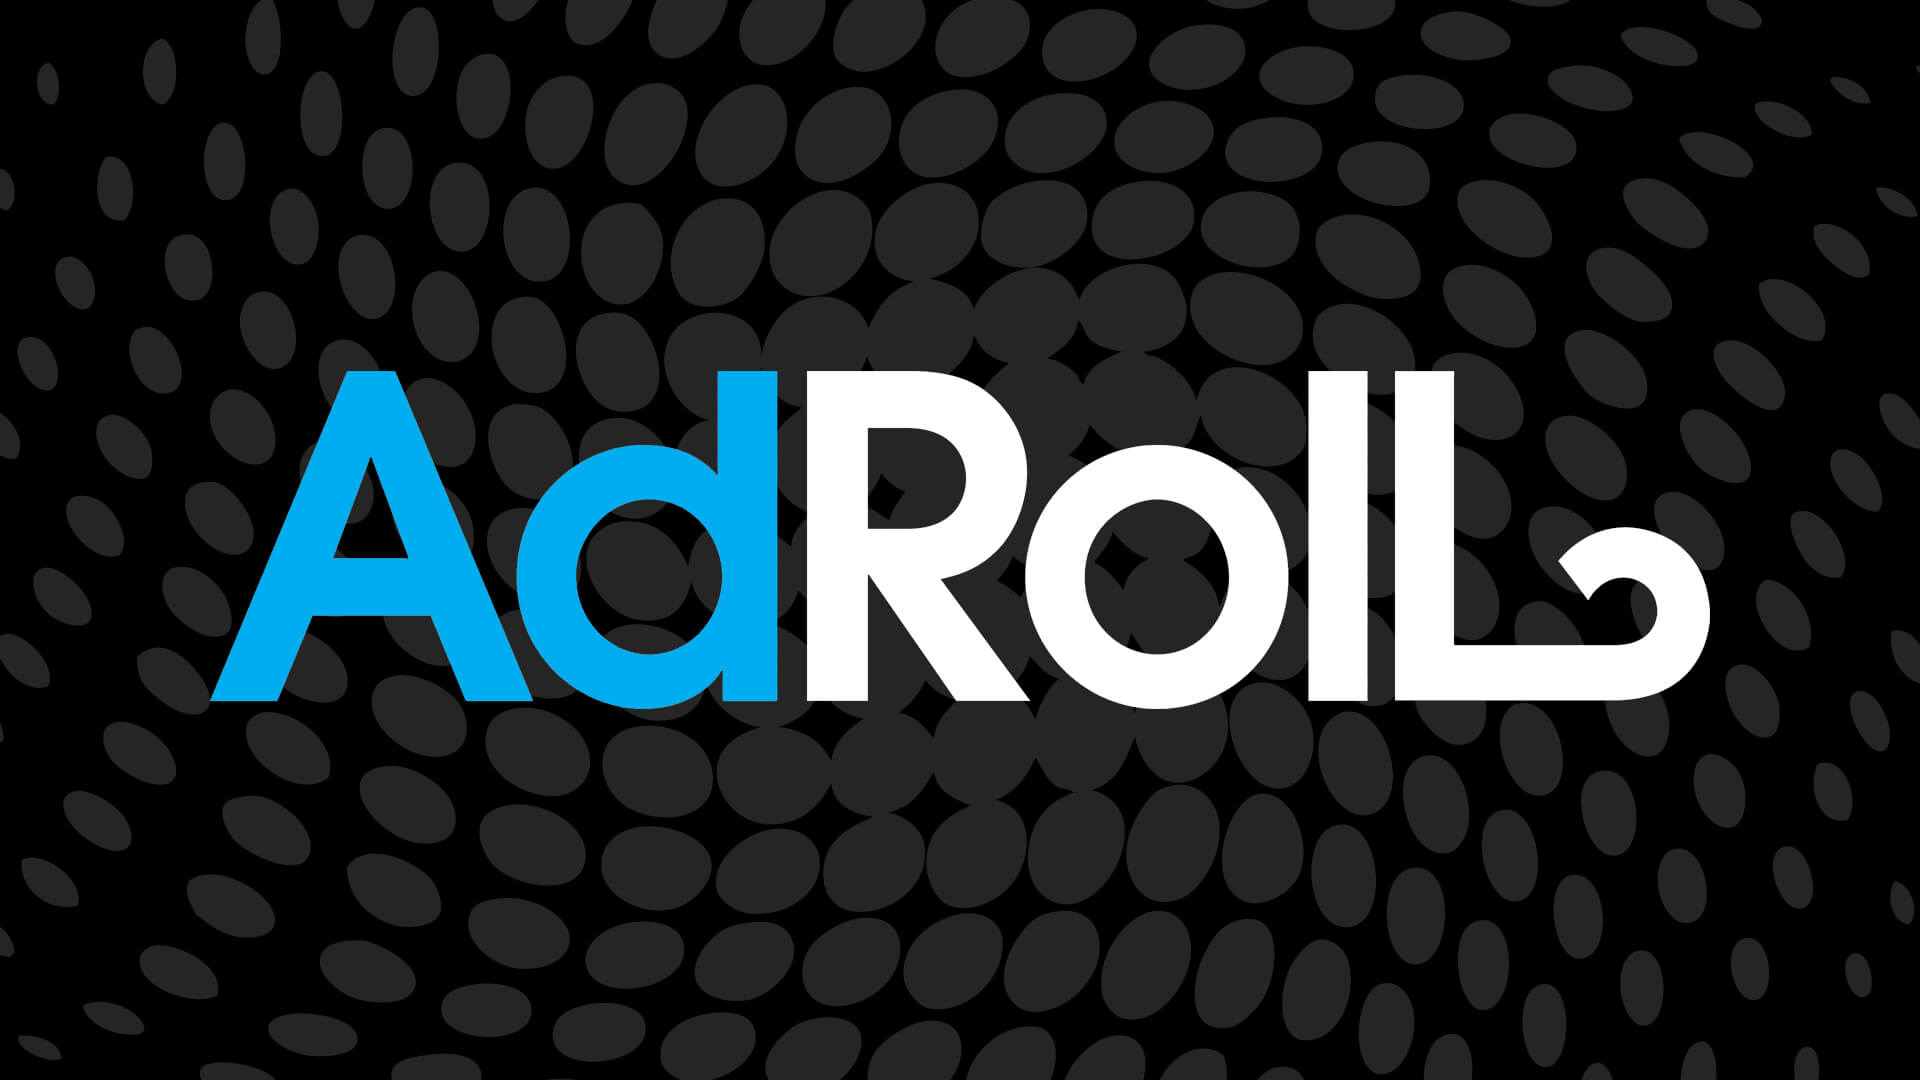 Adroll Logo PNG-PlusPNG pluspng.com-1920 - Adroll Logo PNG - Adroll Logo Vector PNG